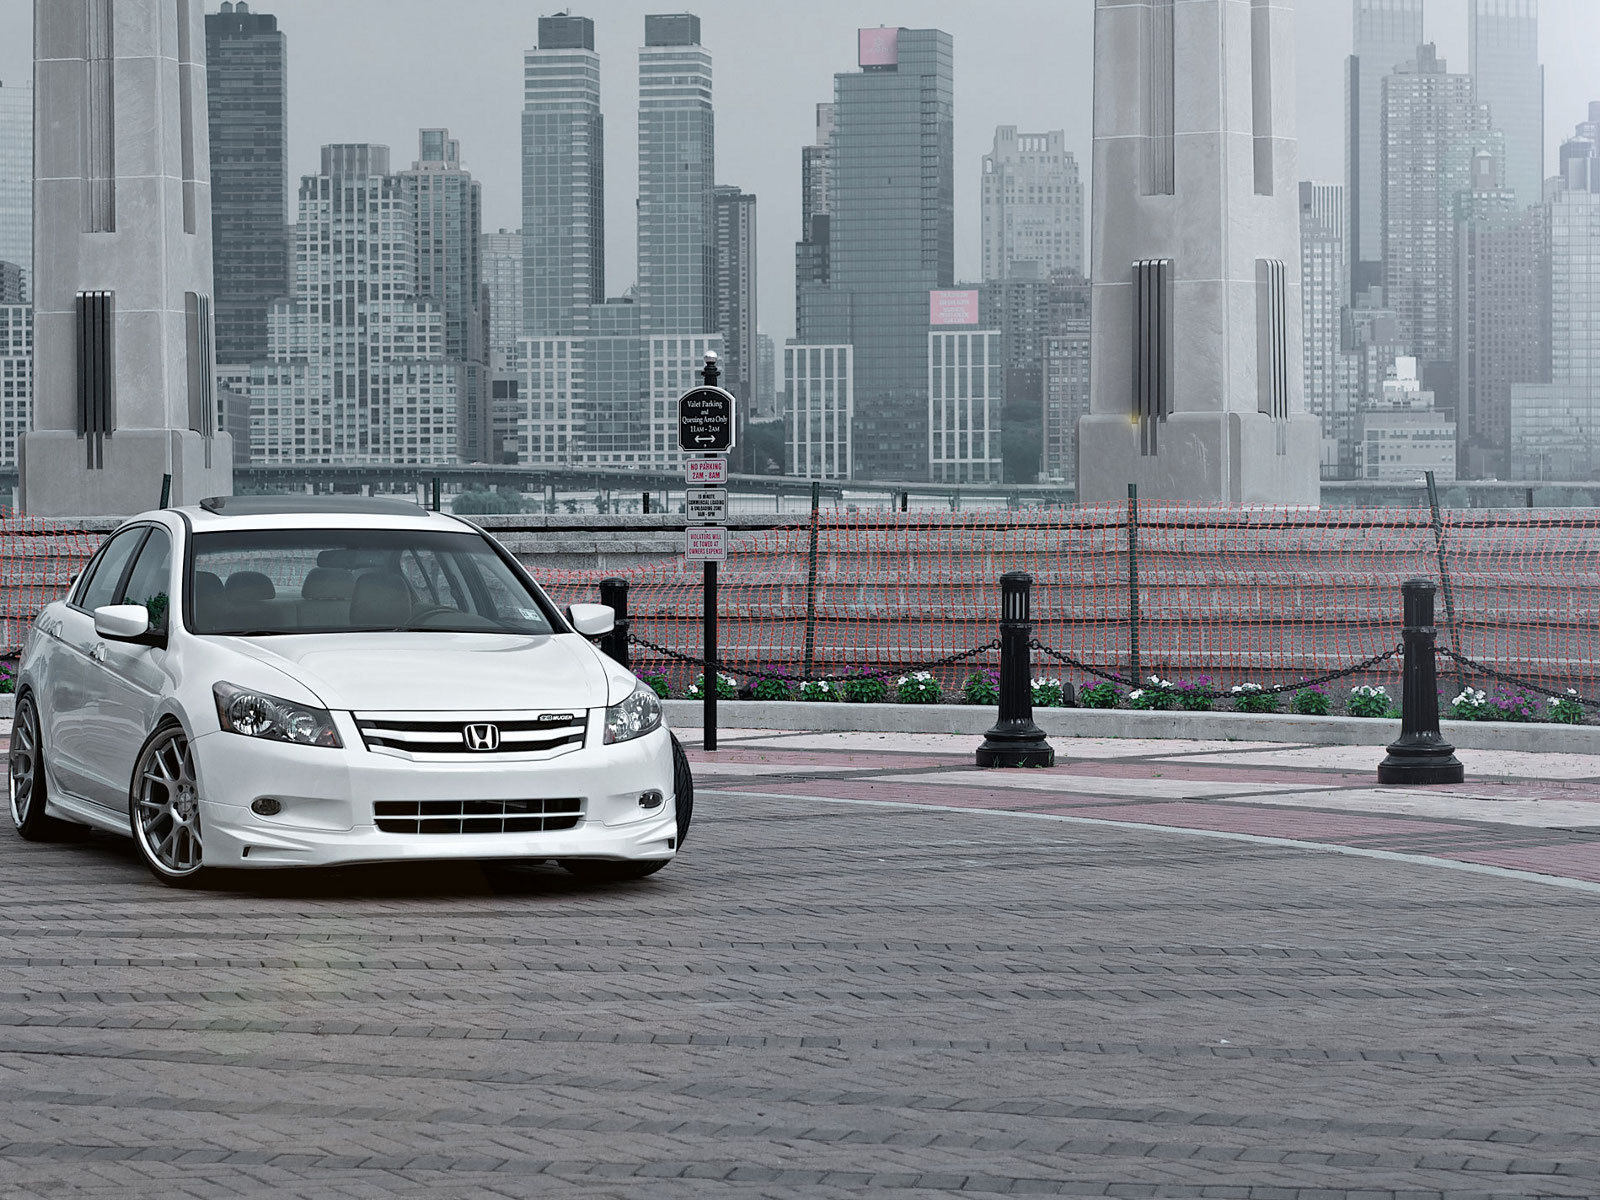 cars, авто фото, хонда, тачки, auto wallpapers, mugen, авто обои, honda, accord